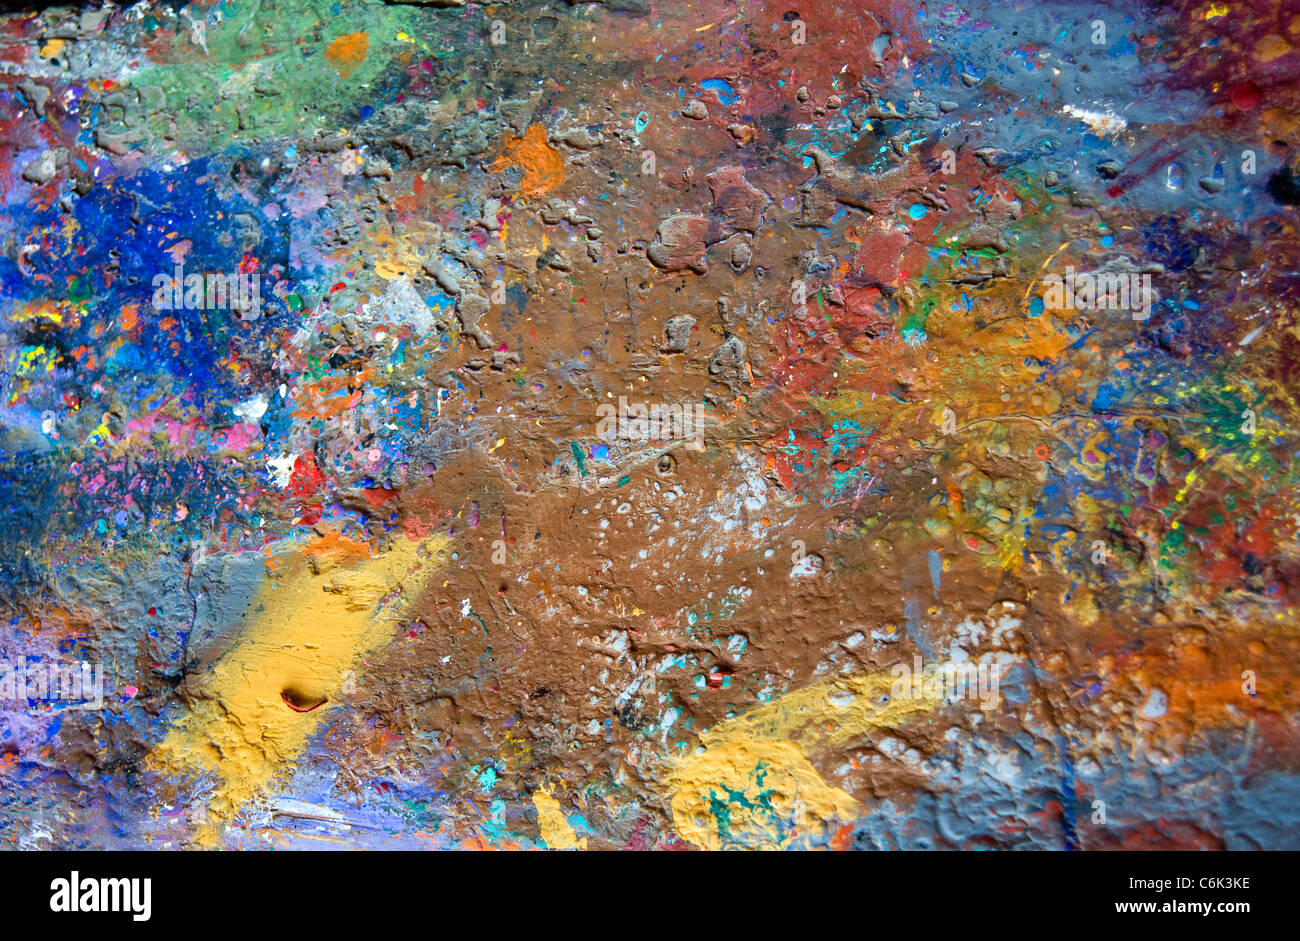 Abstract paint splatters on workshop bench at wood carving workshop in Oaxaca, Mexico - Stock Image